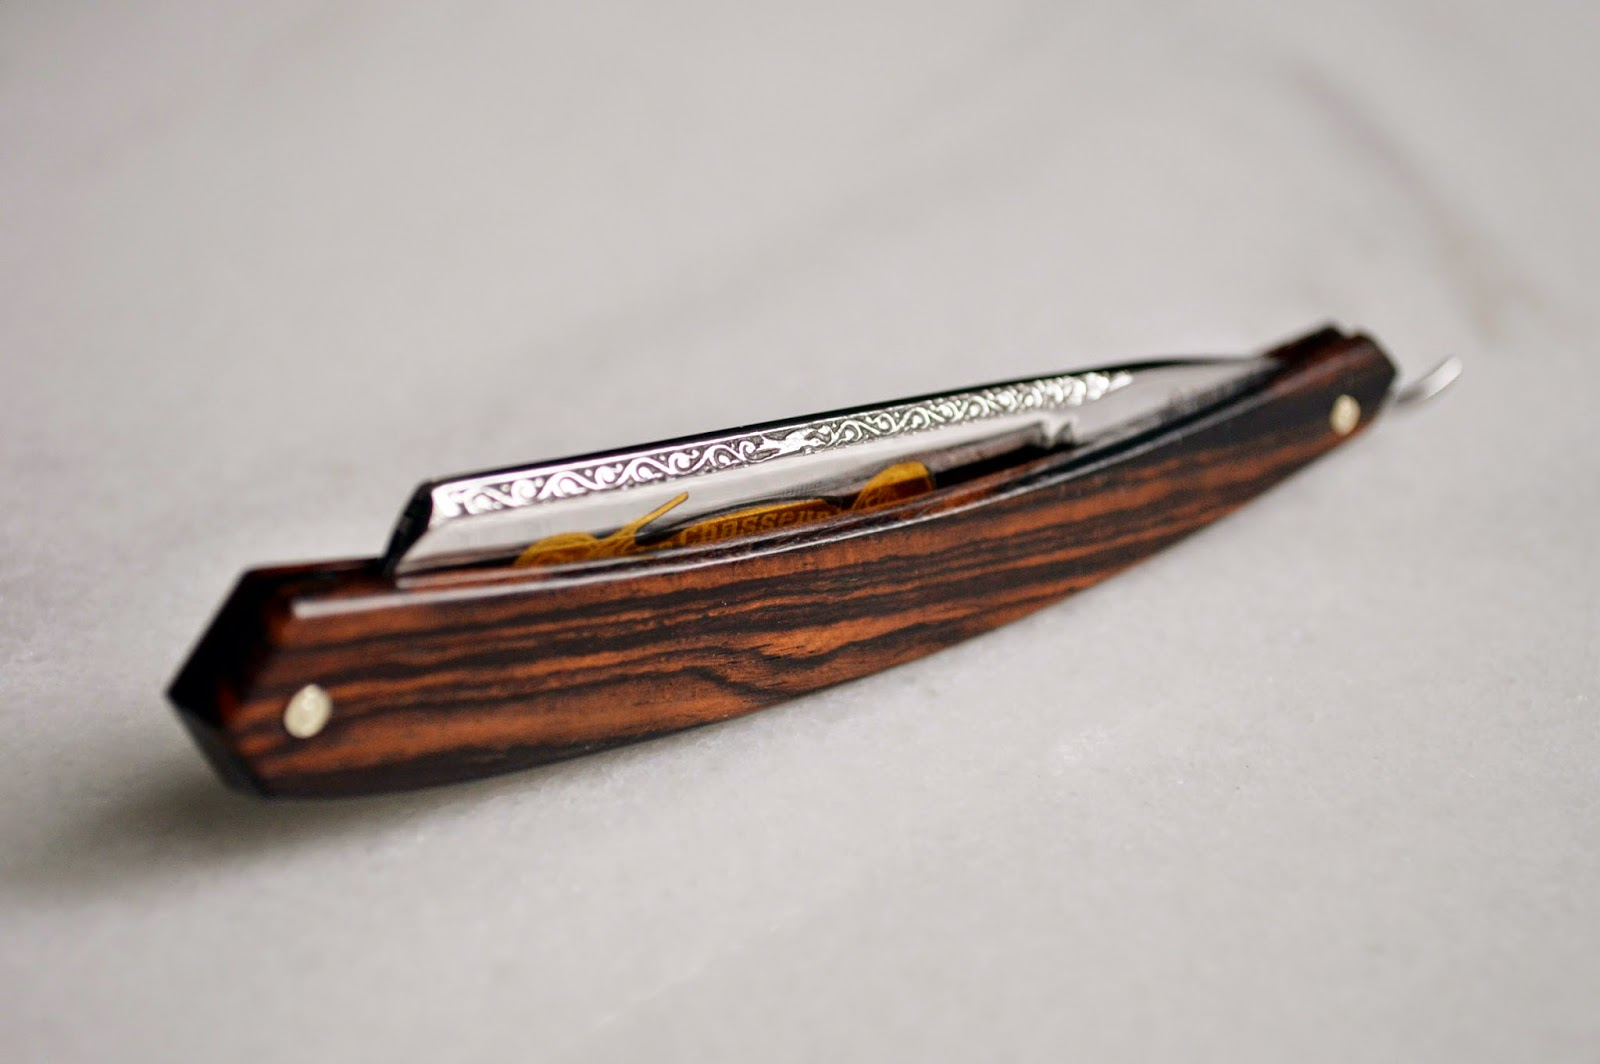 Thiers-Issard cocobolo straight razor, custom made for our collection